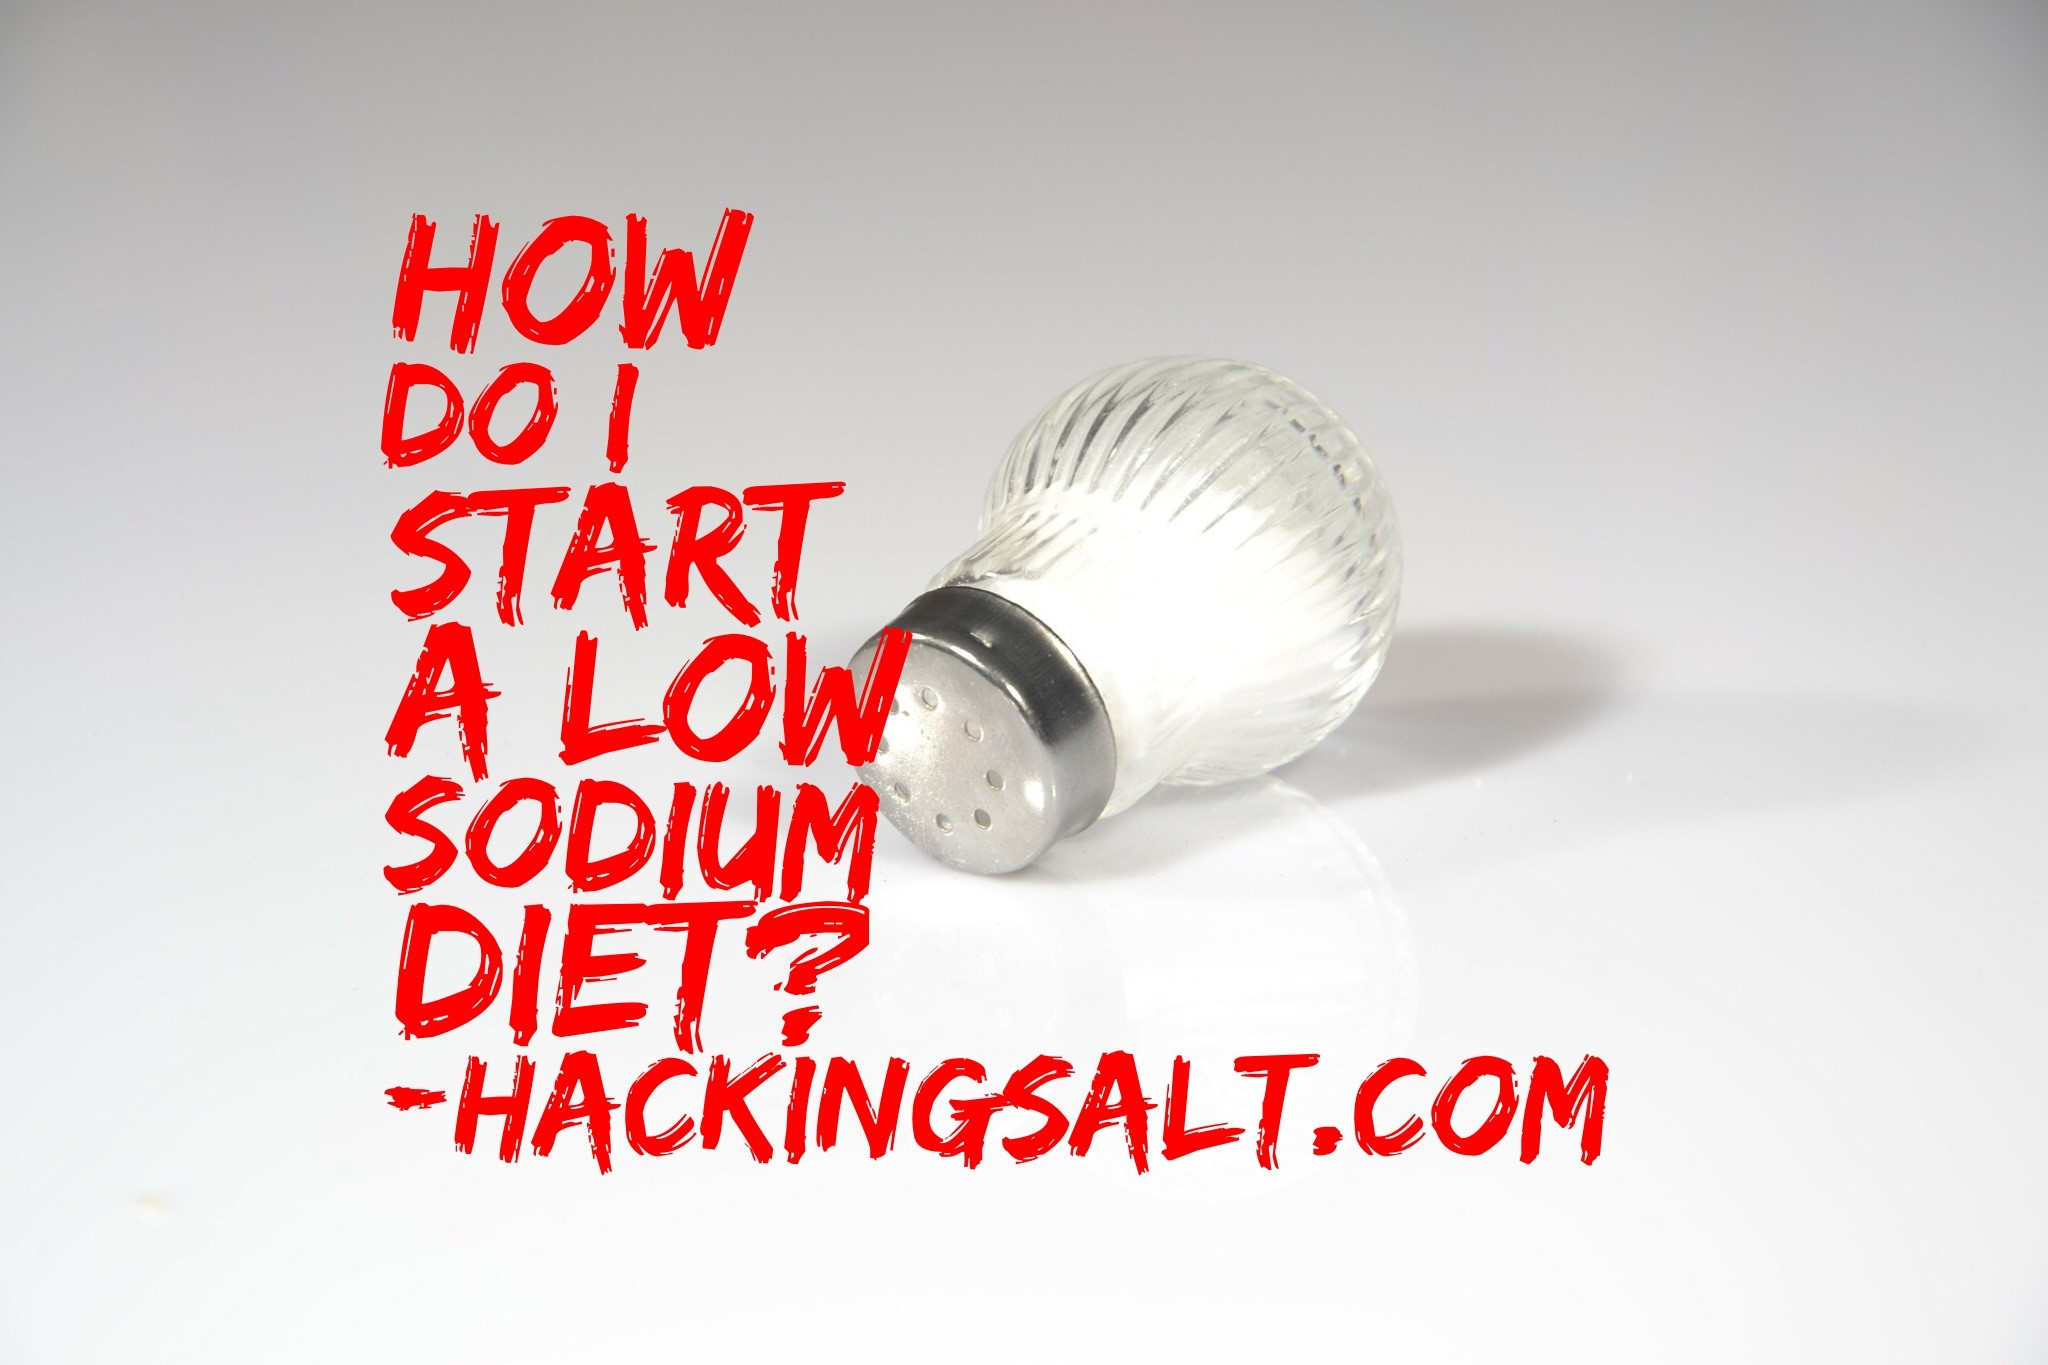 how do i start a low sodium diet - hacking salt, Skeleton